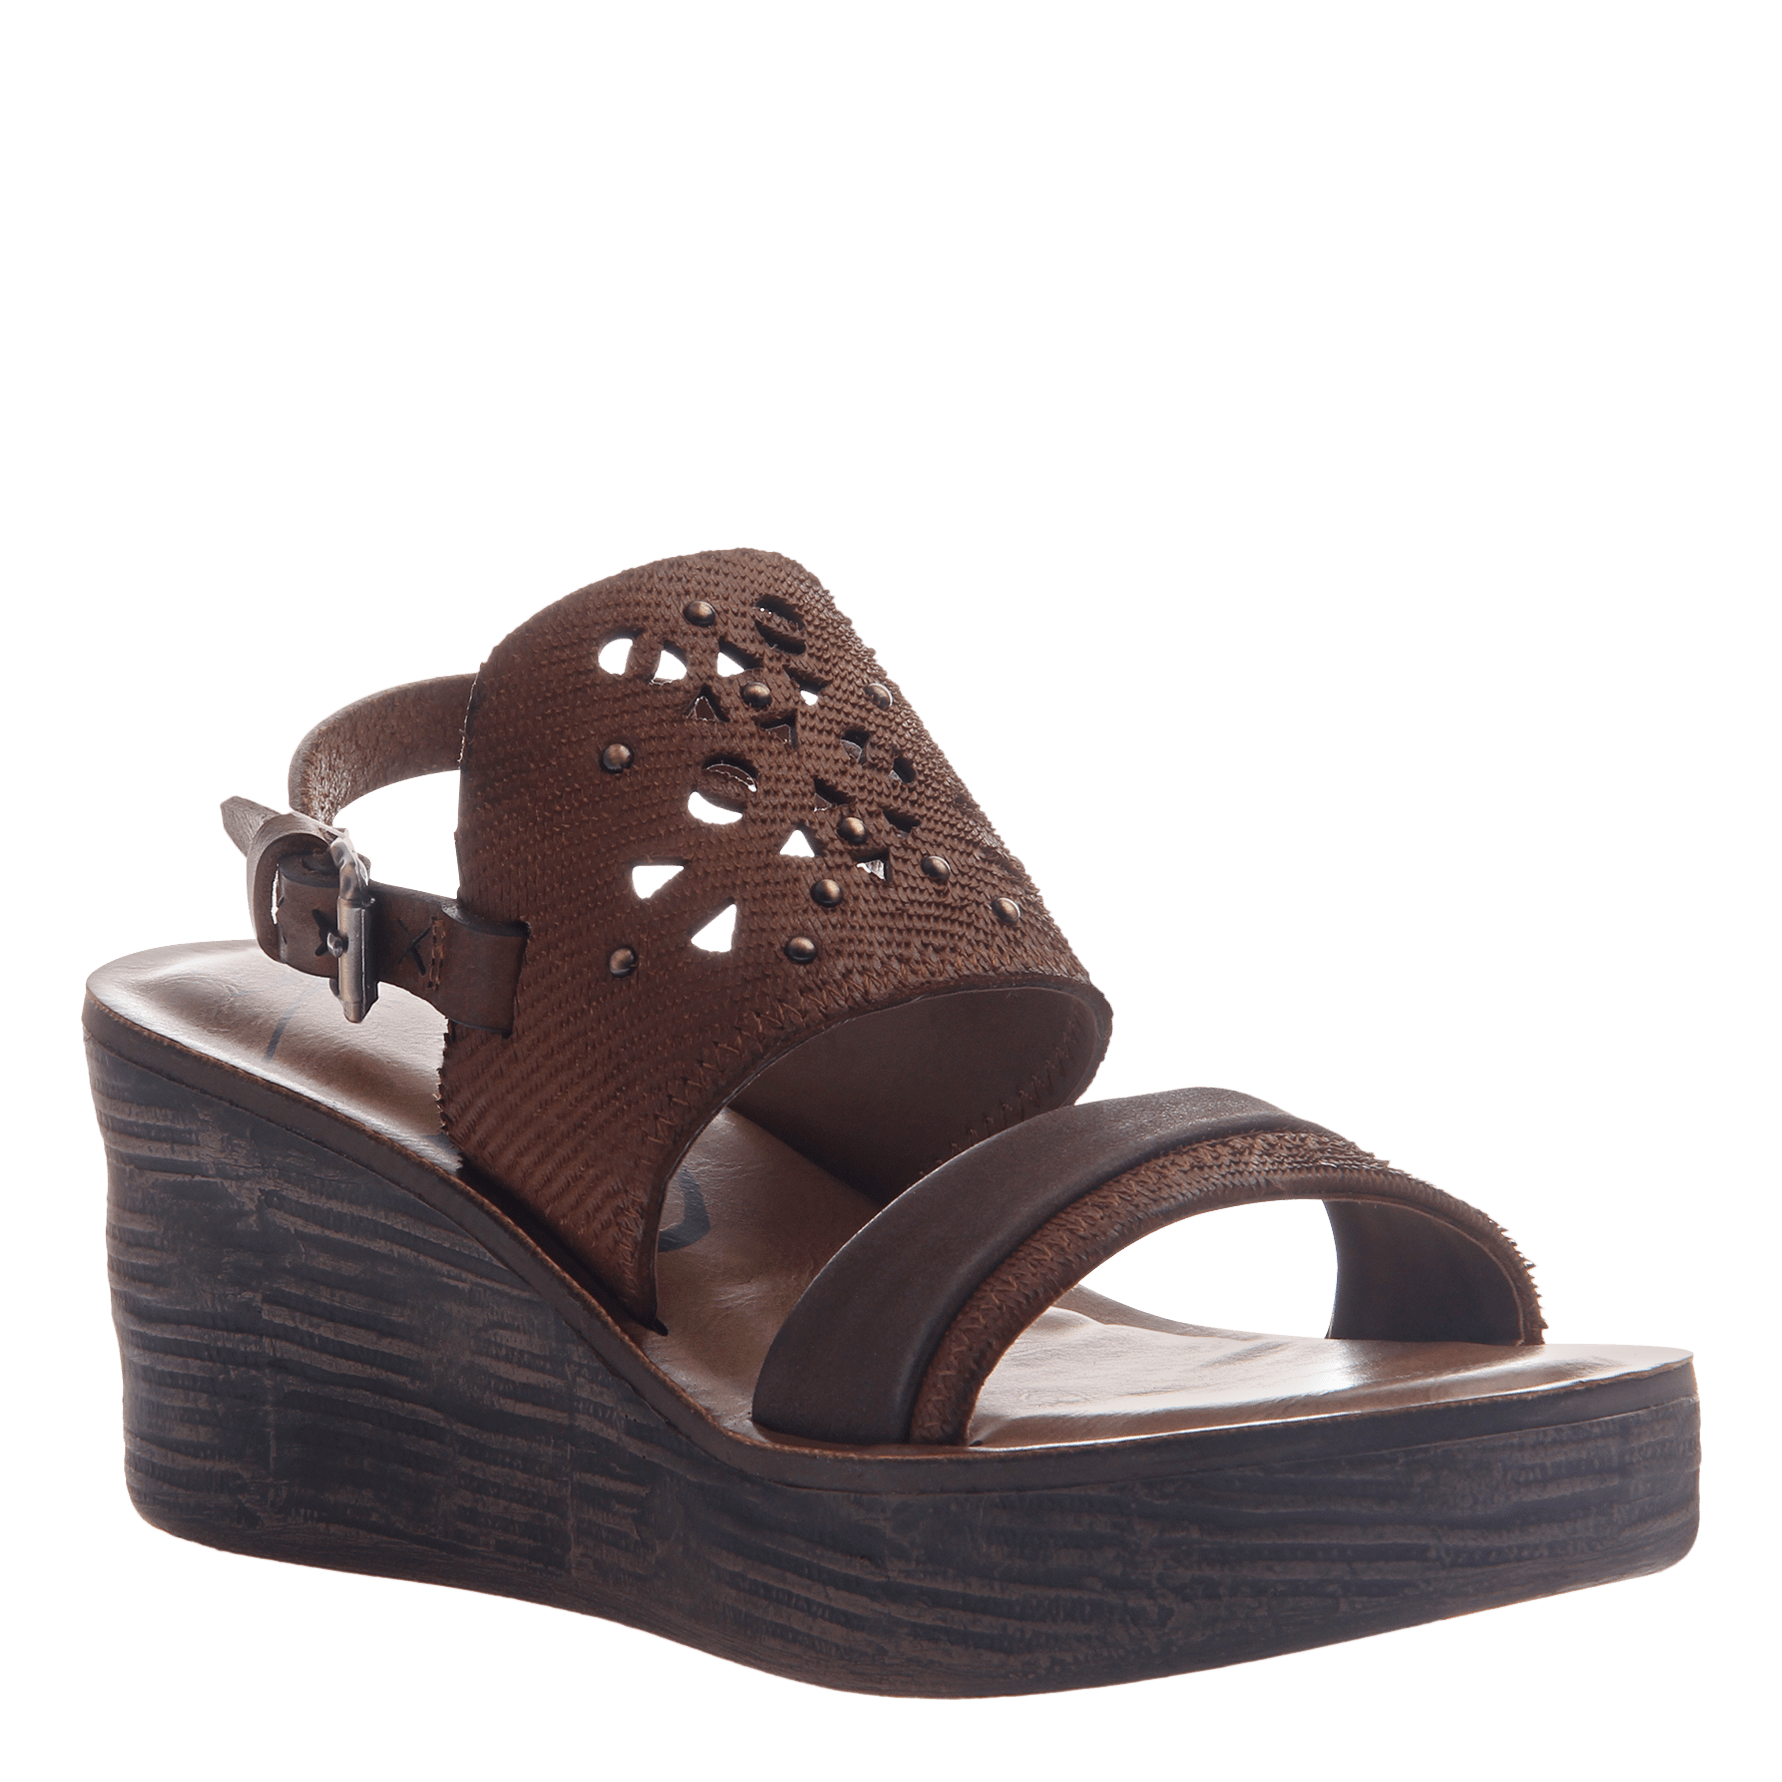 a878e3942 Hippie in Oak Wedge Sandals | Women's Shoes by OTBT